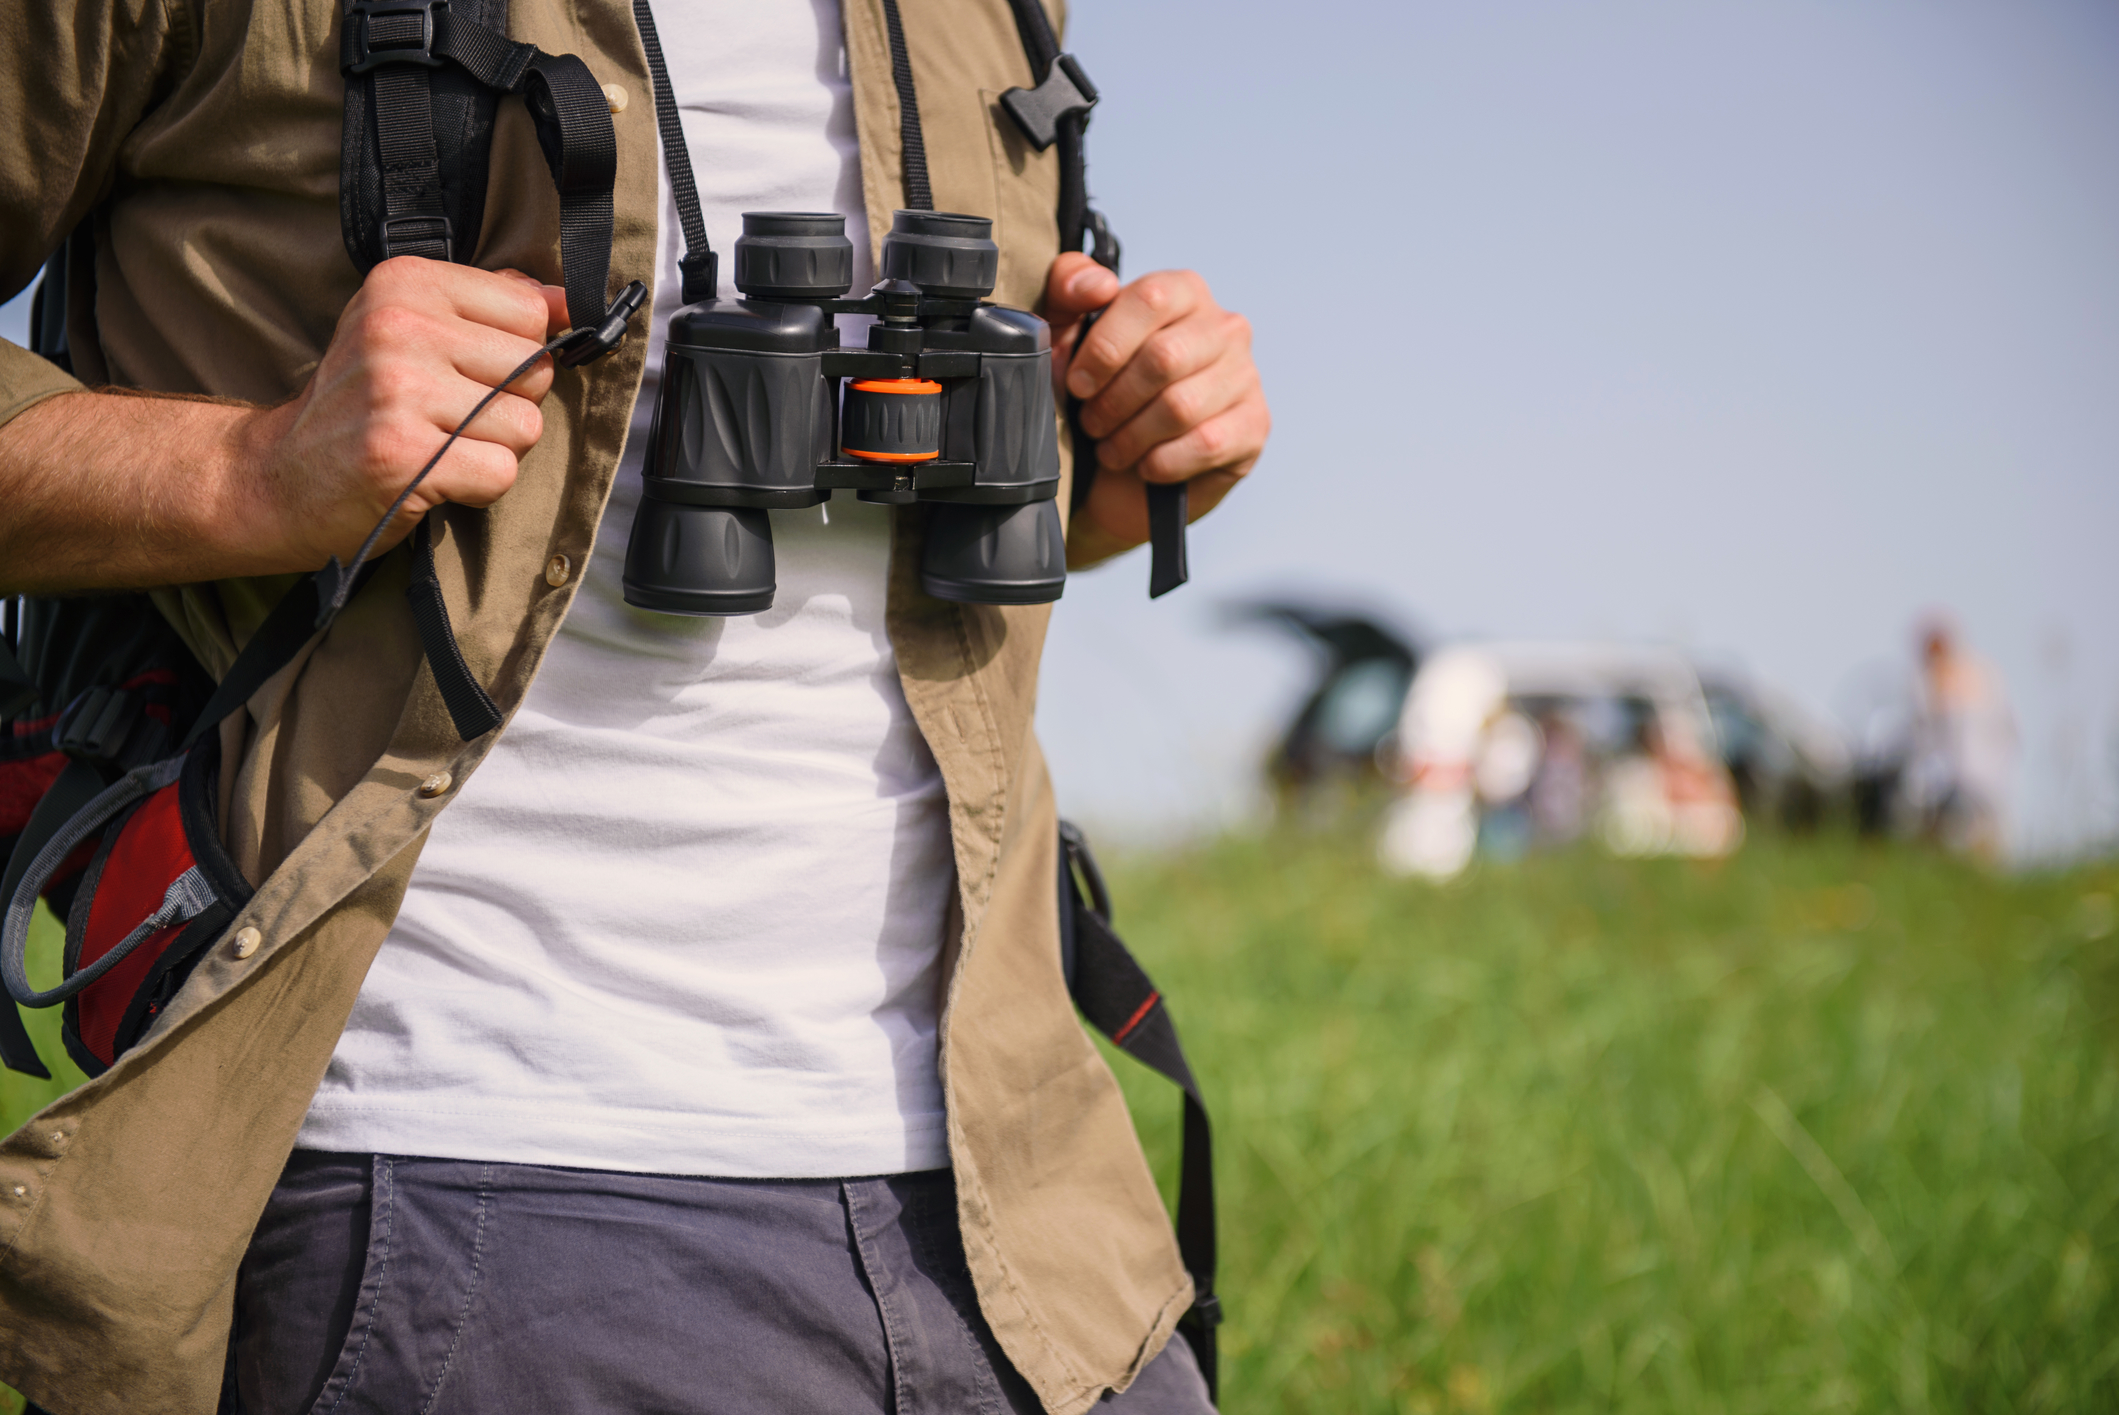 Why Binoculars Belong In The Glove Compartment